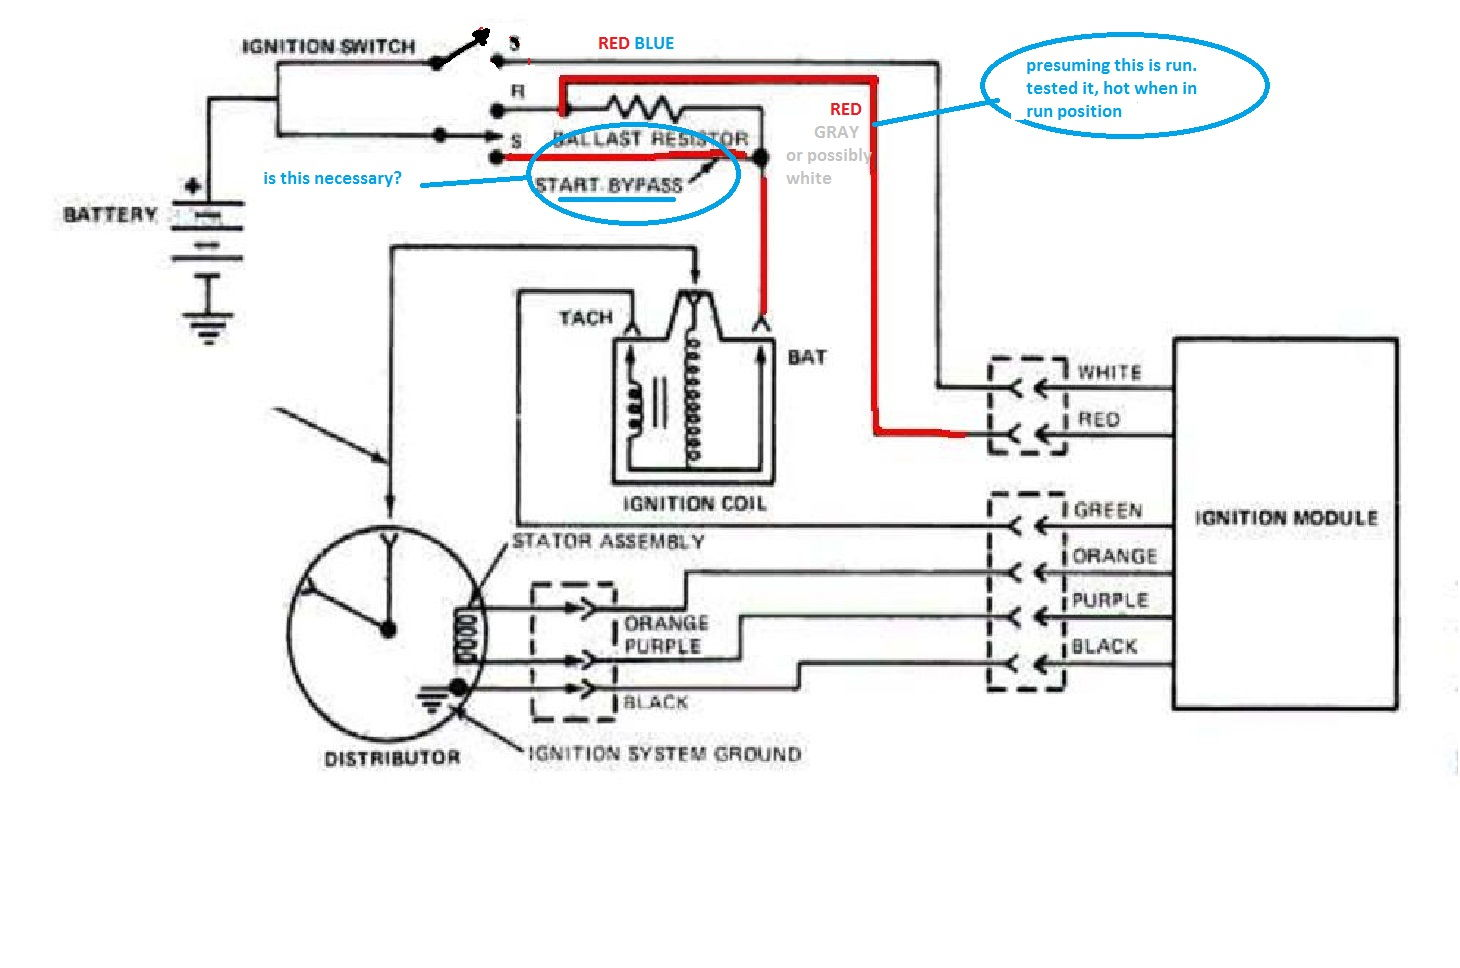 80 onemoretime_77a733abdd0886c2d82bed12694a25a5d9ea8937 help with ignition wiring!!! ford truck enthusiasts forums crane ignition wiring diagram at mr168.co